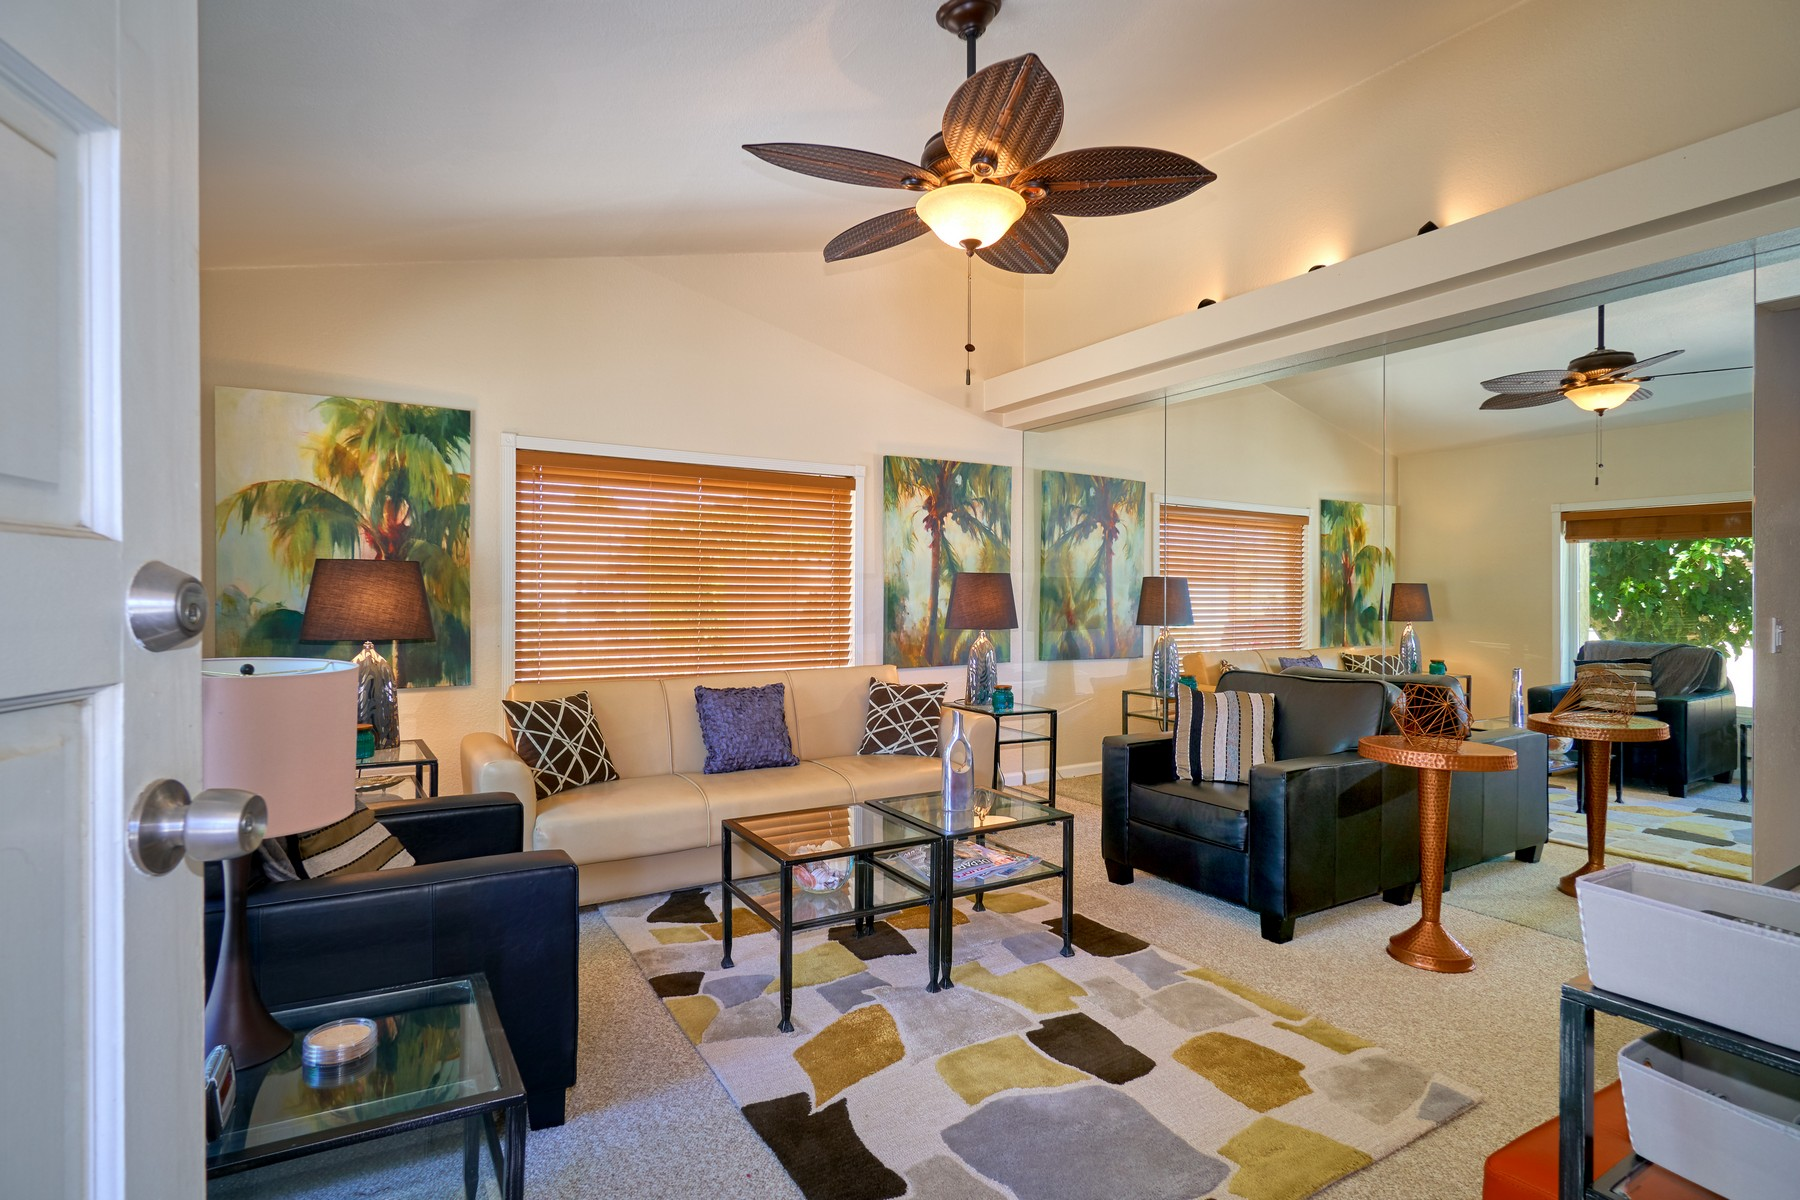 Single Family Home for Sale at 3242 N Mica Dr 3242 N Mica Dr. Palm Springs, California, 92262 United States